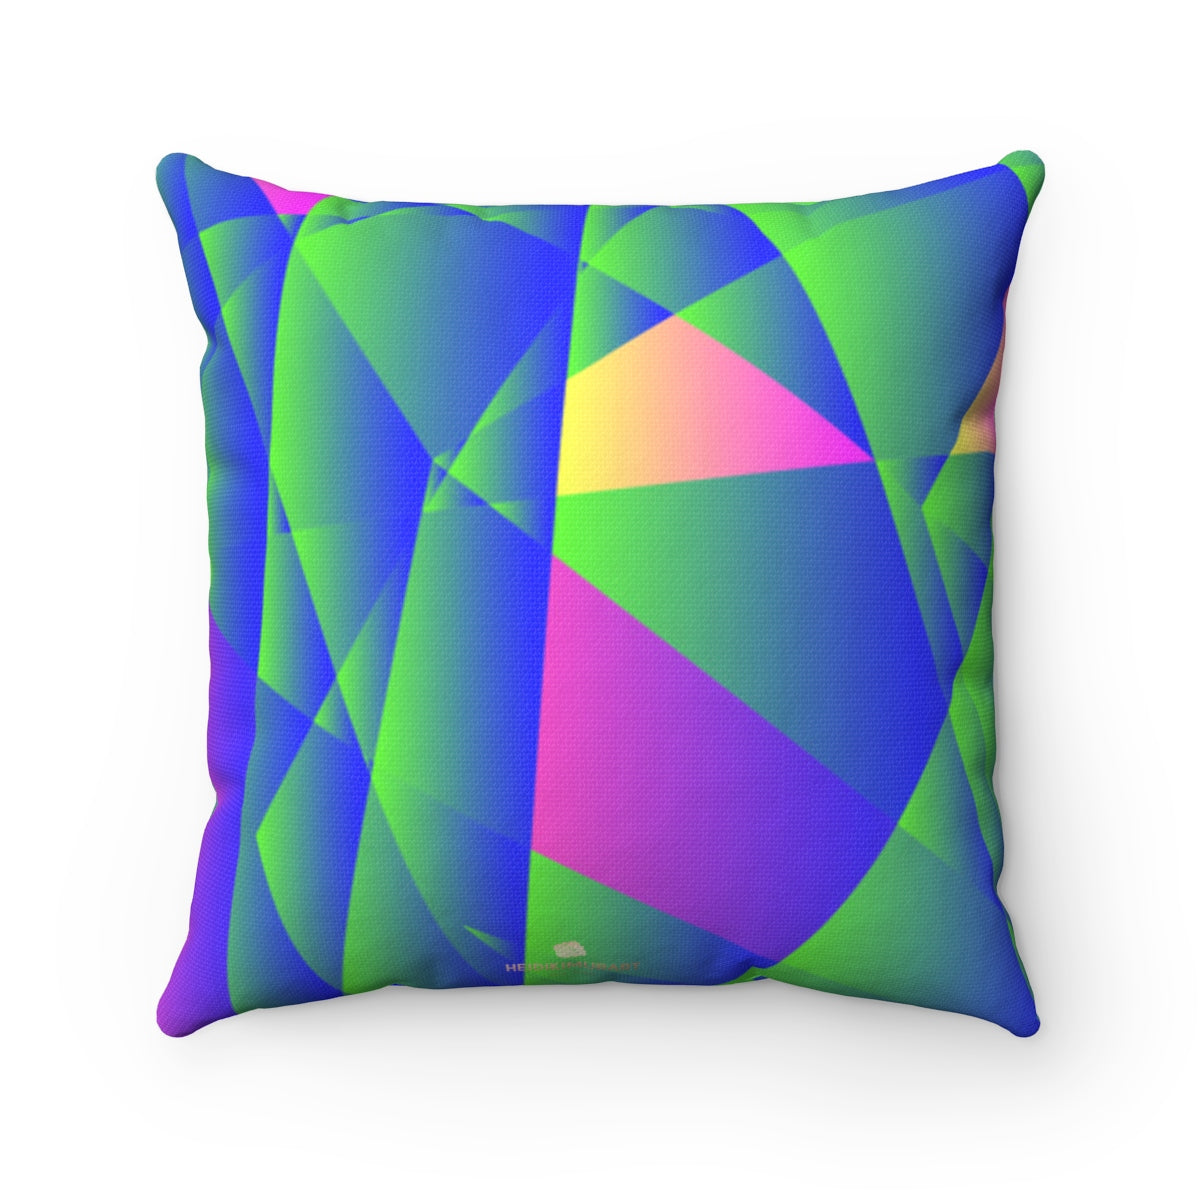 Geometric Diamond Purple Blue Print Pillow Spun Polyester Square Pillow- Made in USA - Heidi Kimura Art LLC